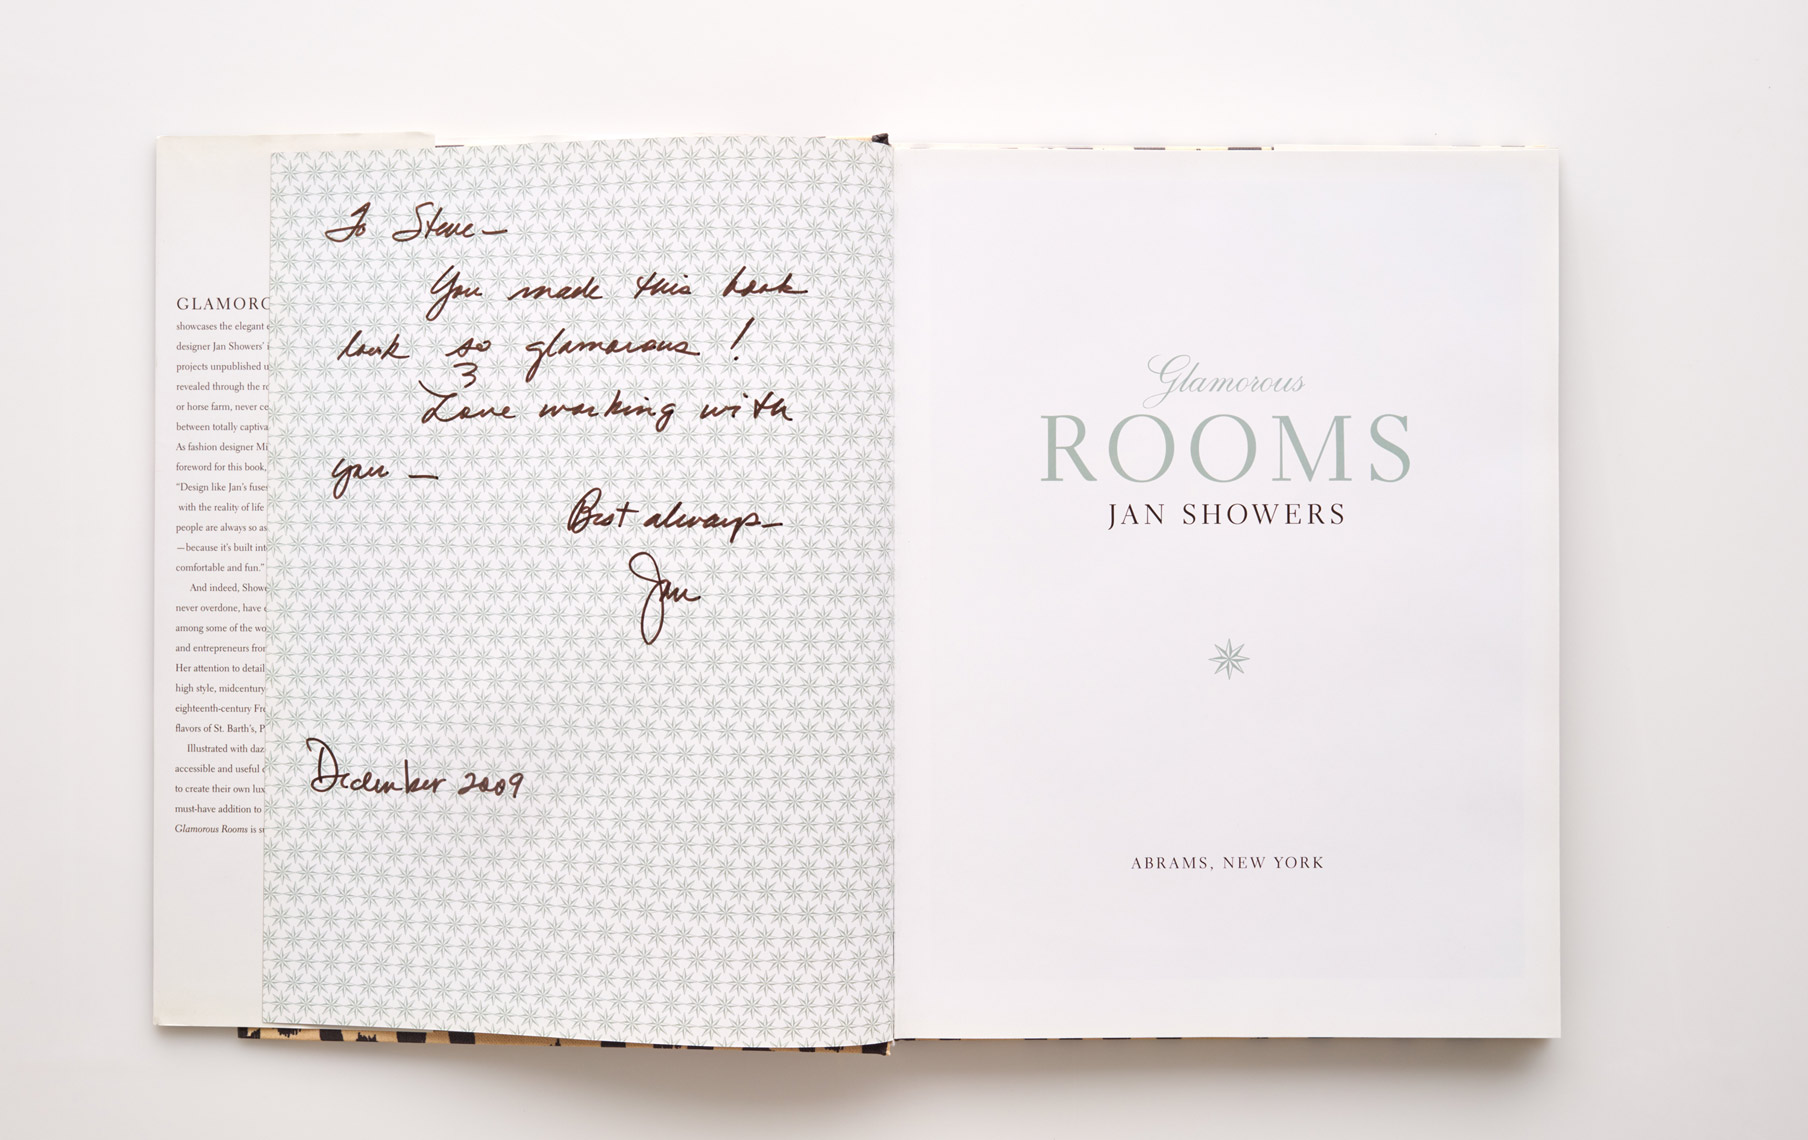 Stephen Karlisch Jan Showers Glamorous Rooms Autograph